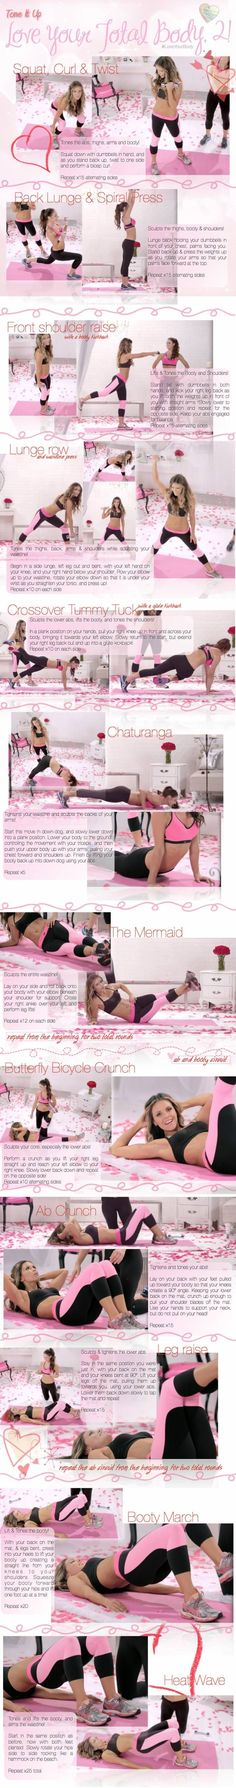 AMAZING WORKOUT: Tone it Up - Love Your Total Body